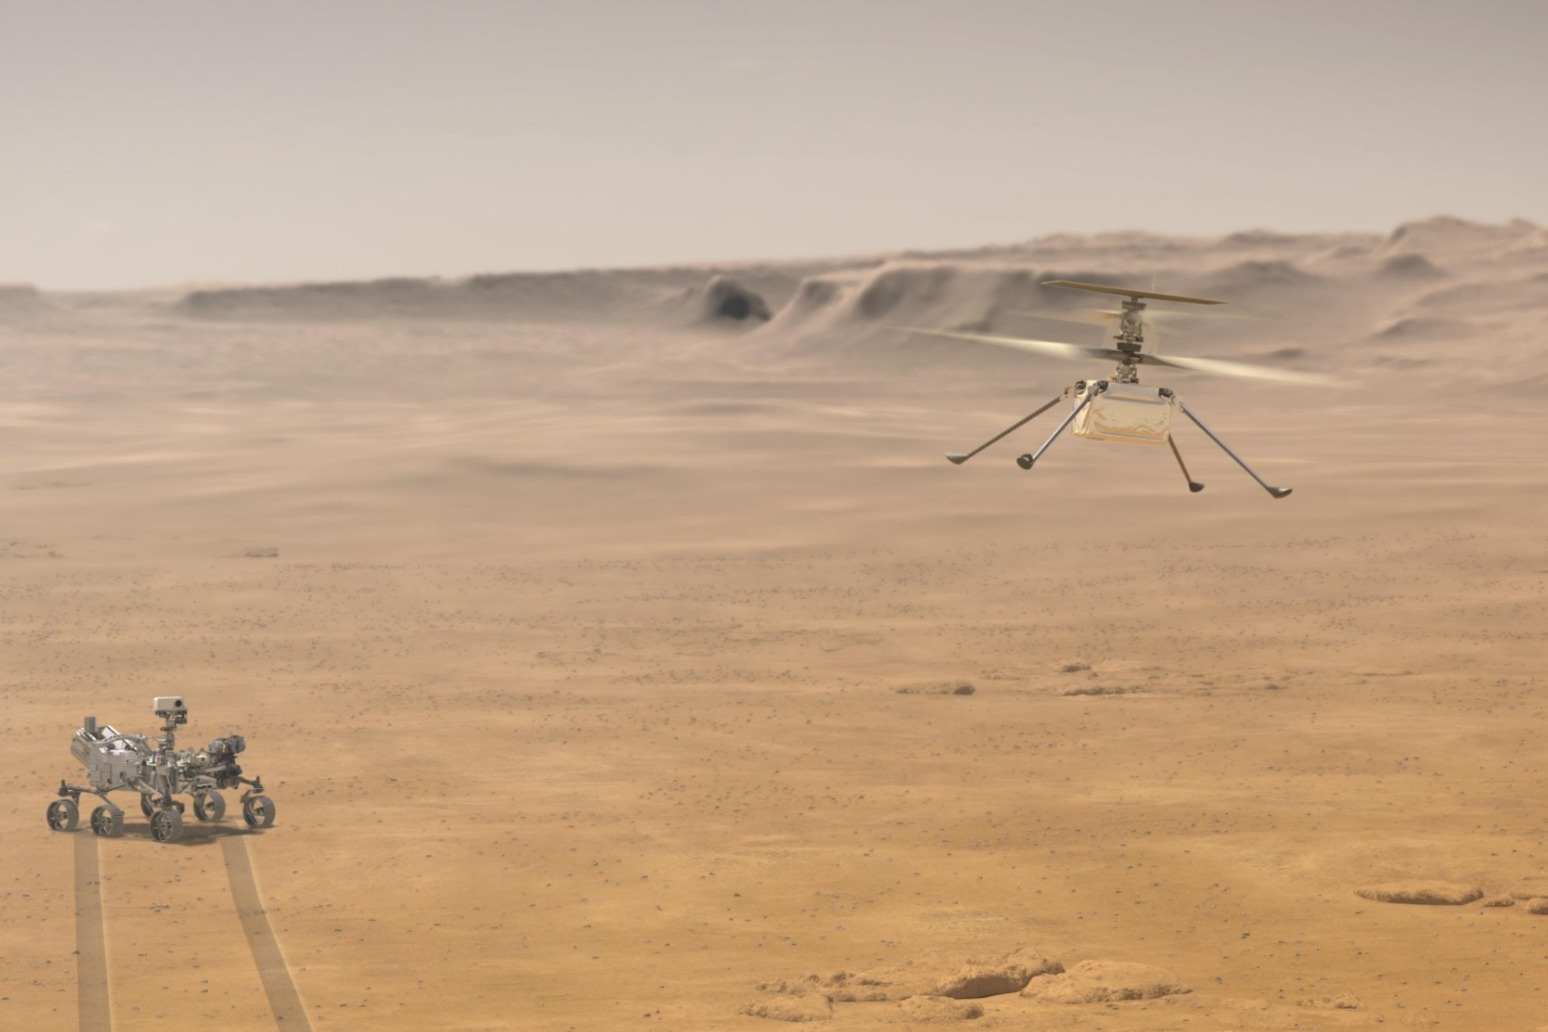 Nasa's Ingenuity Mars helicopter has completed the first ever controlled flight on another planet